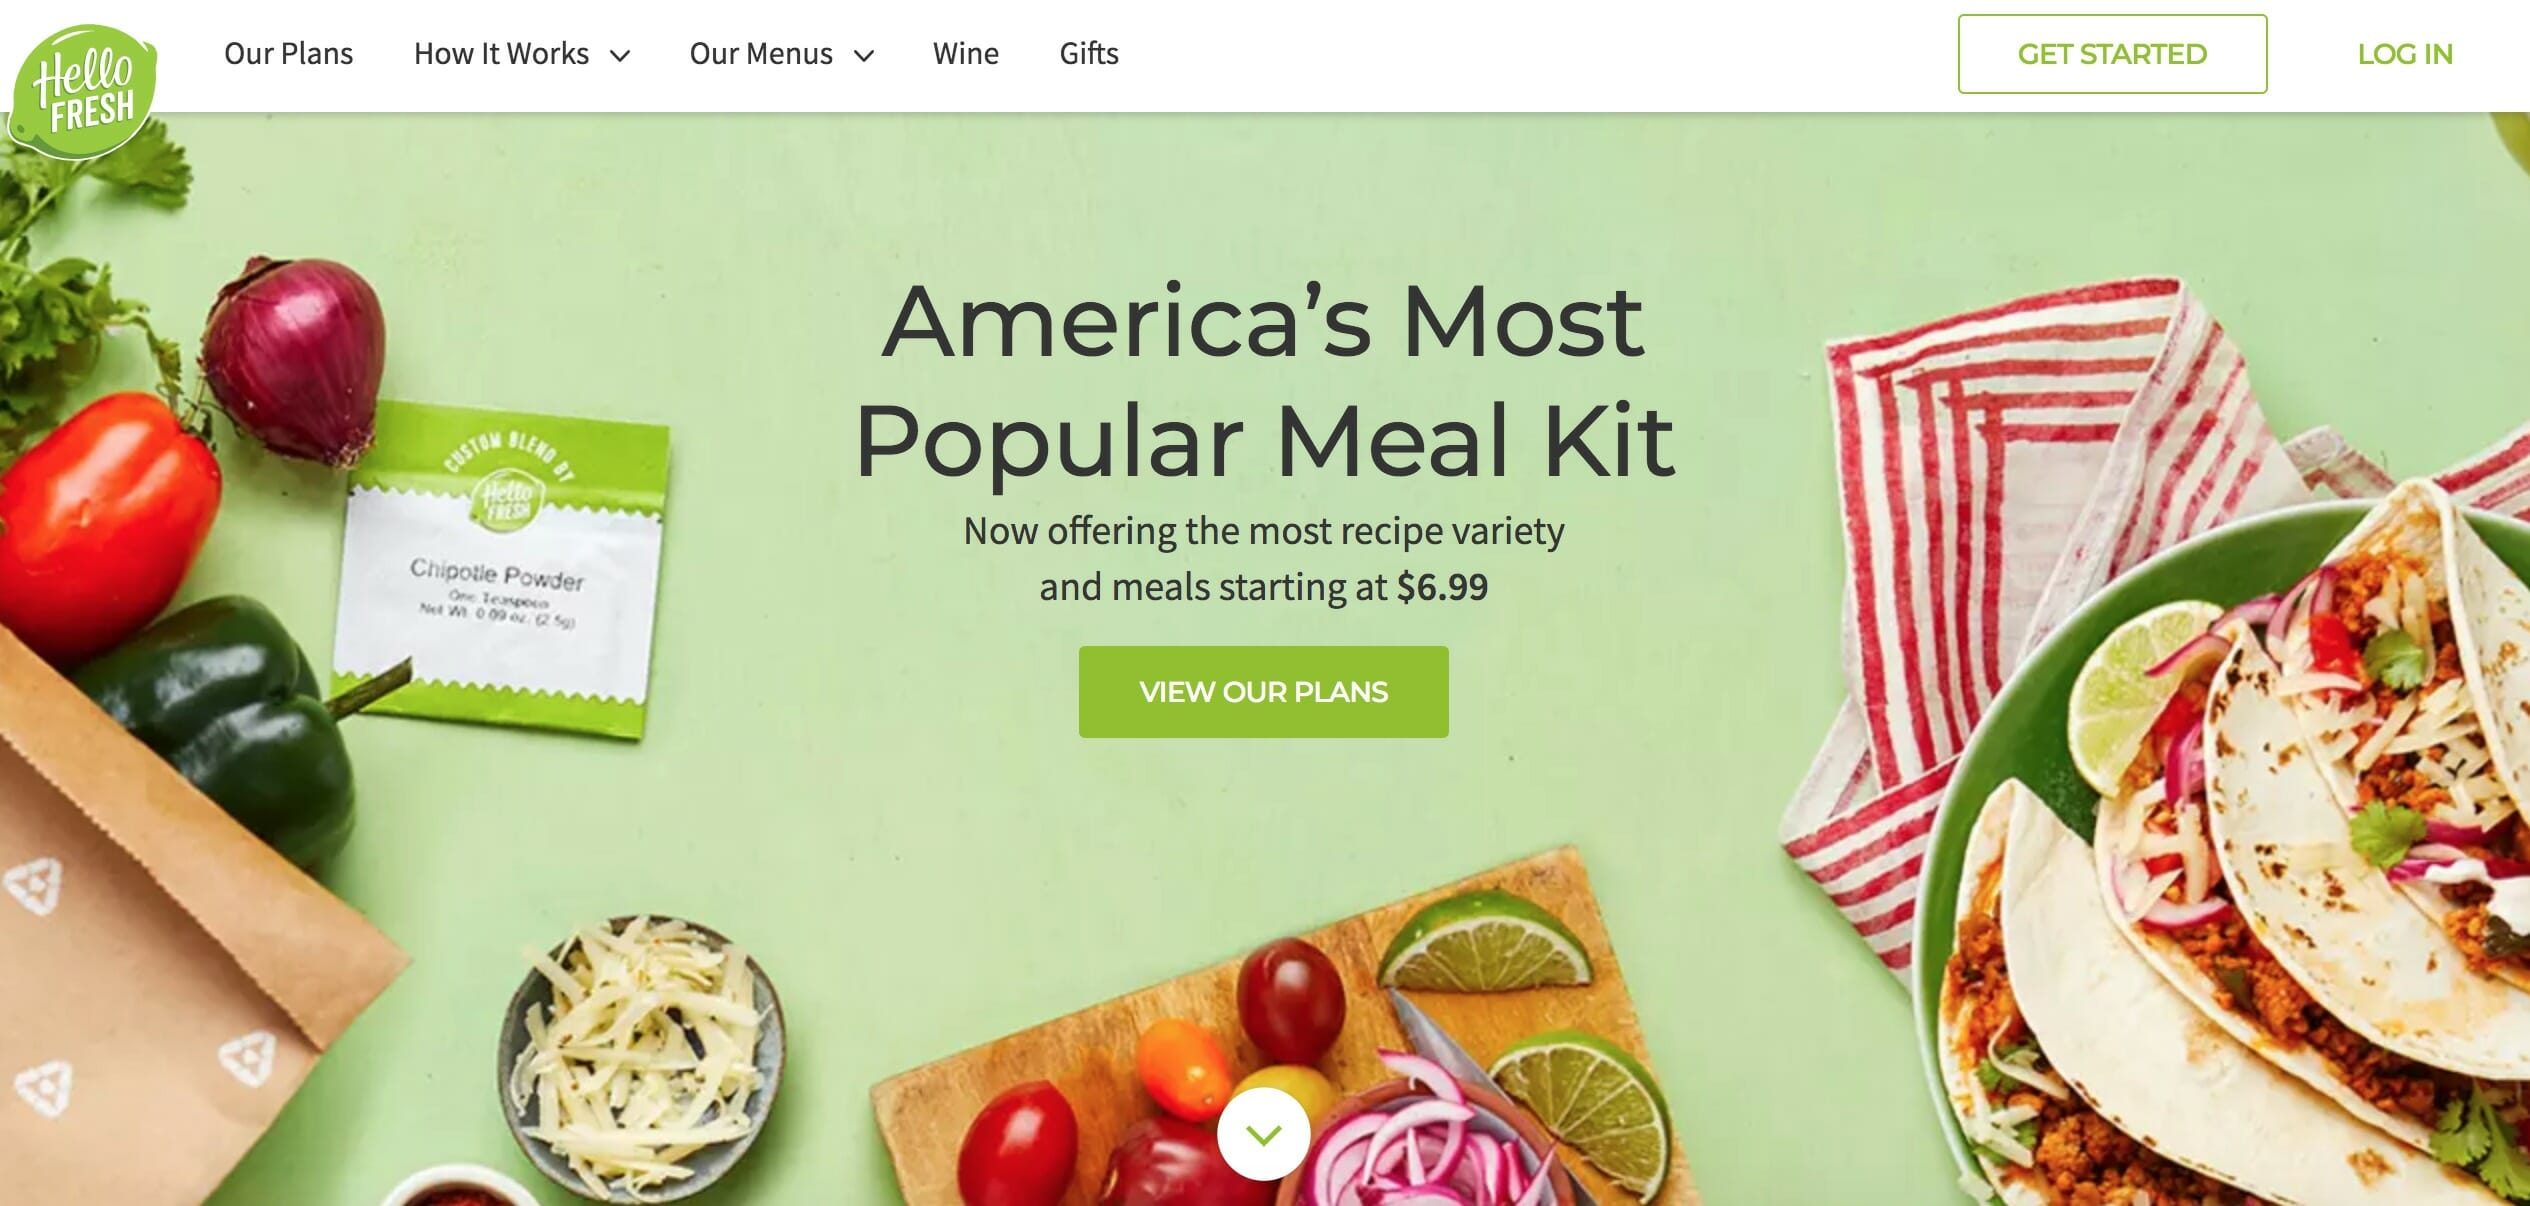 How To Get Another Free Hellofresh